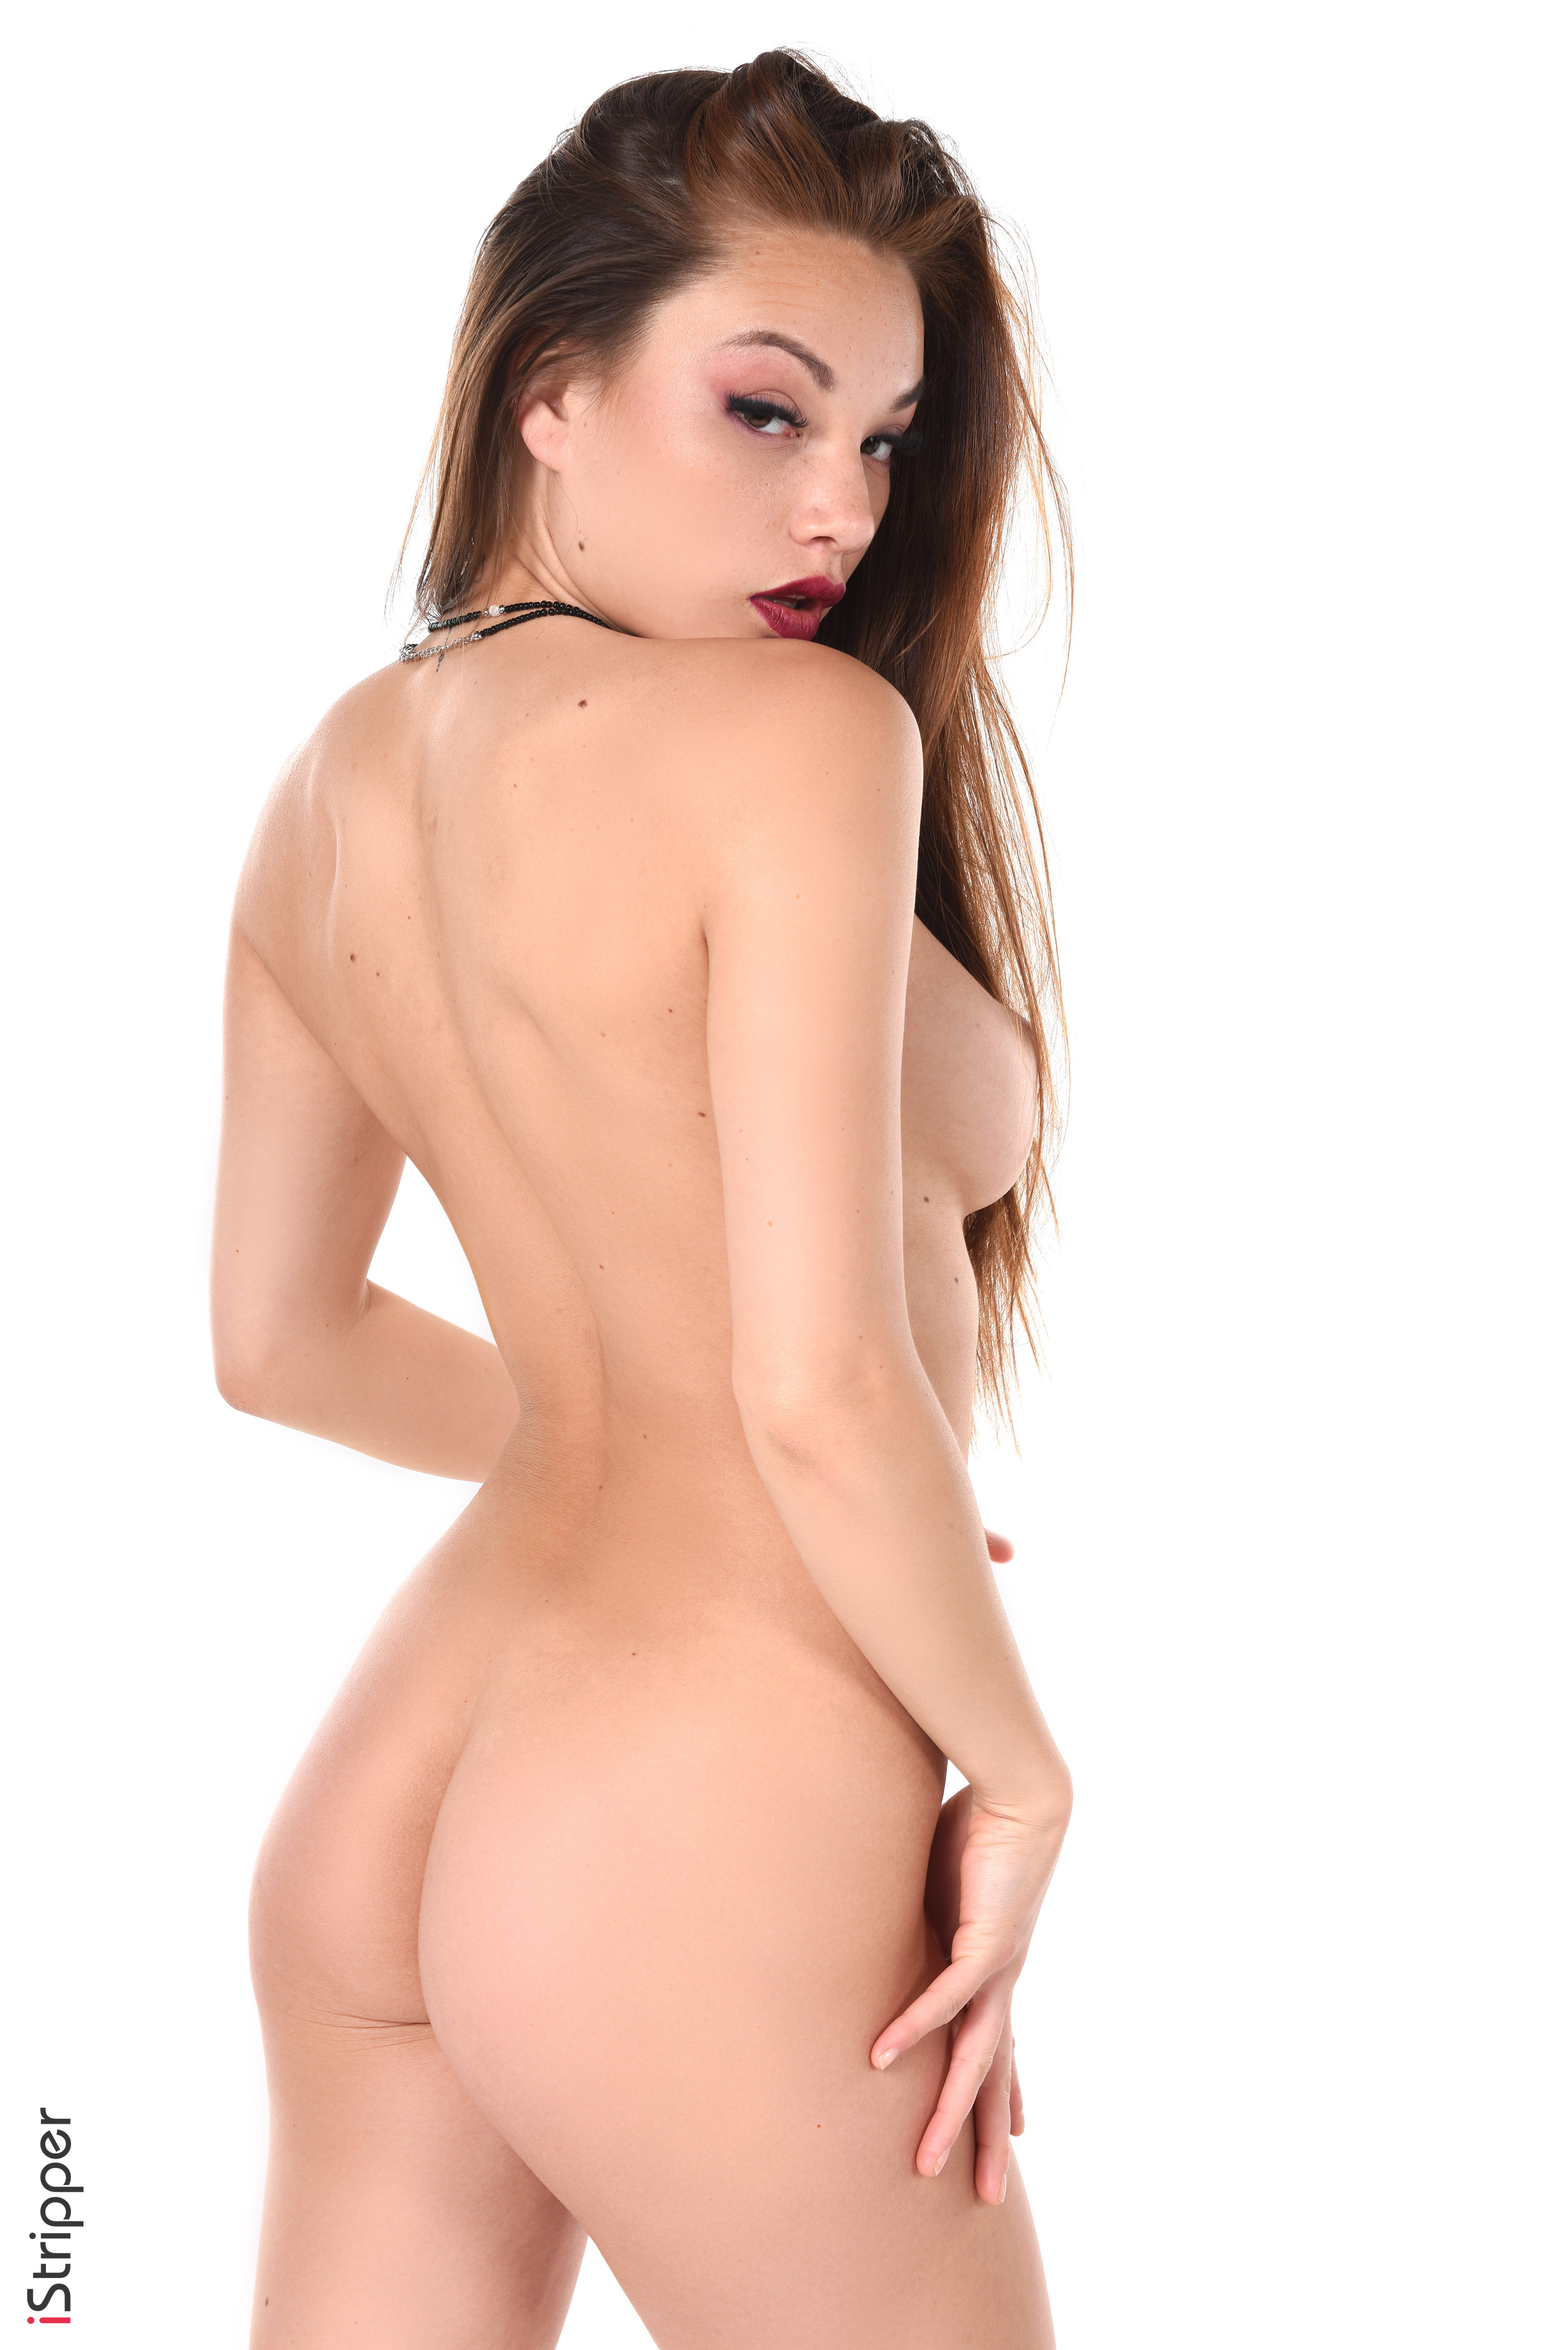 hd wallpapers of Bare Females